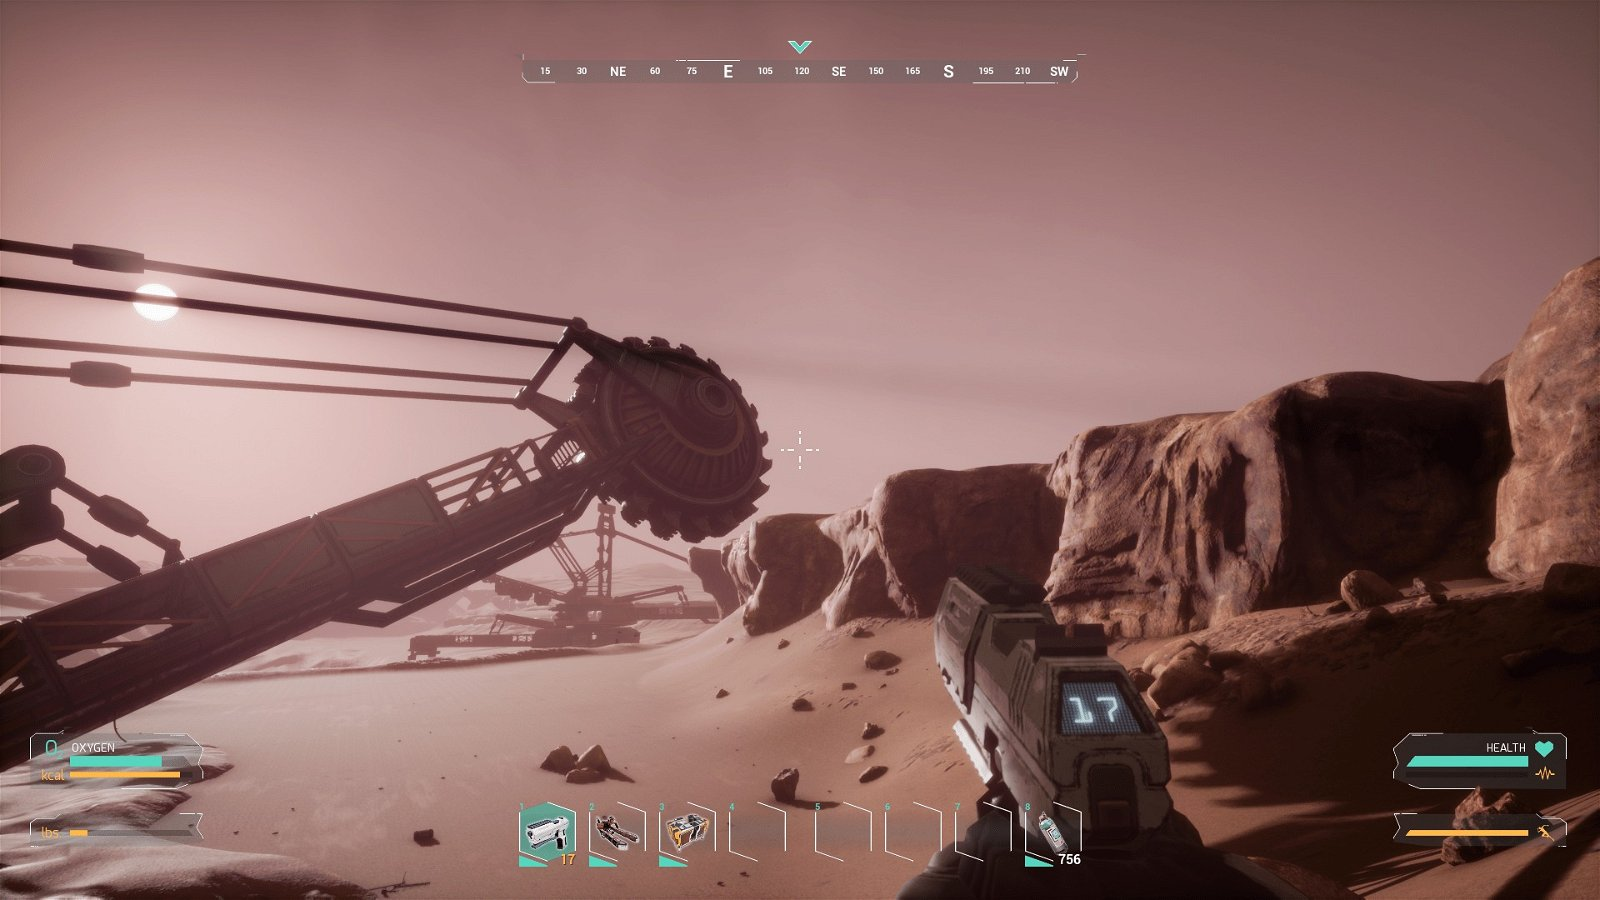 FIGHT TO SURVIVE AND EXPLORE GALACTIC WASTELANDS OF THE RED PLANET IN 'MEMORIES OF MARS,' AN OPEN WORLD ONLINE SURVIVAL SANDBOX GAME